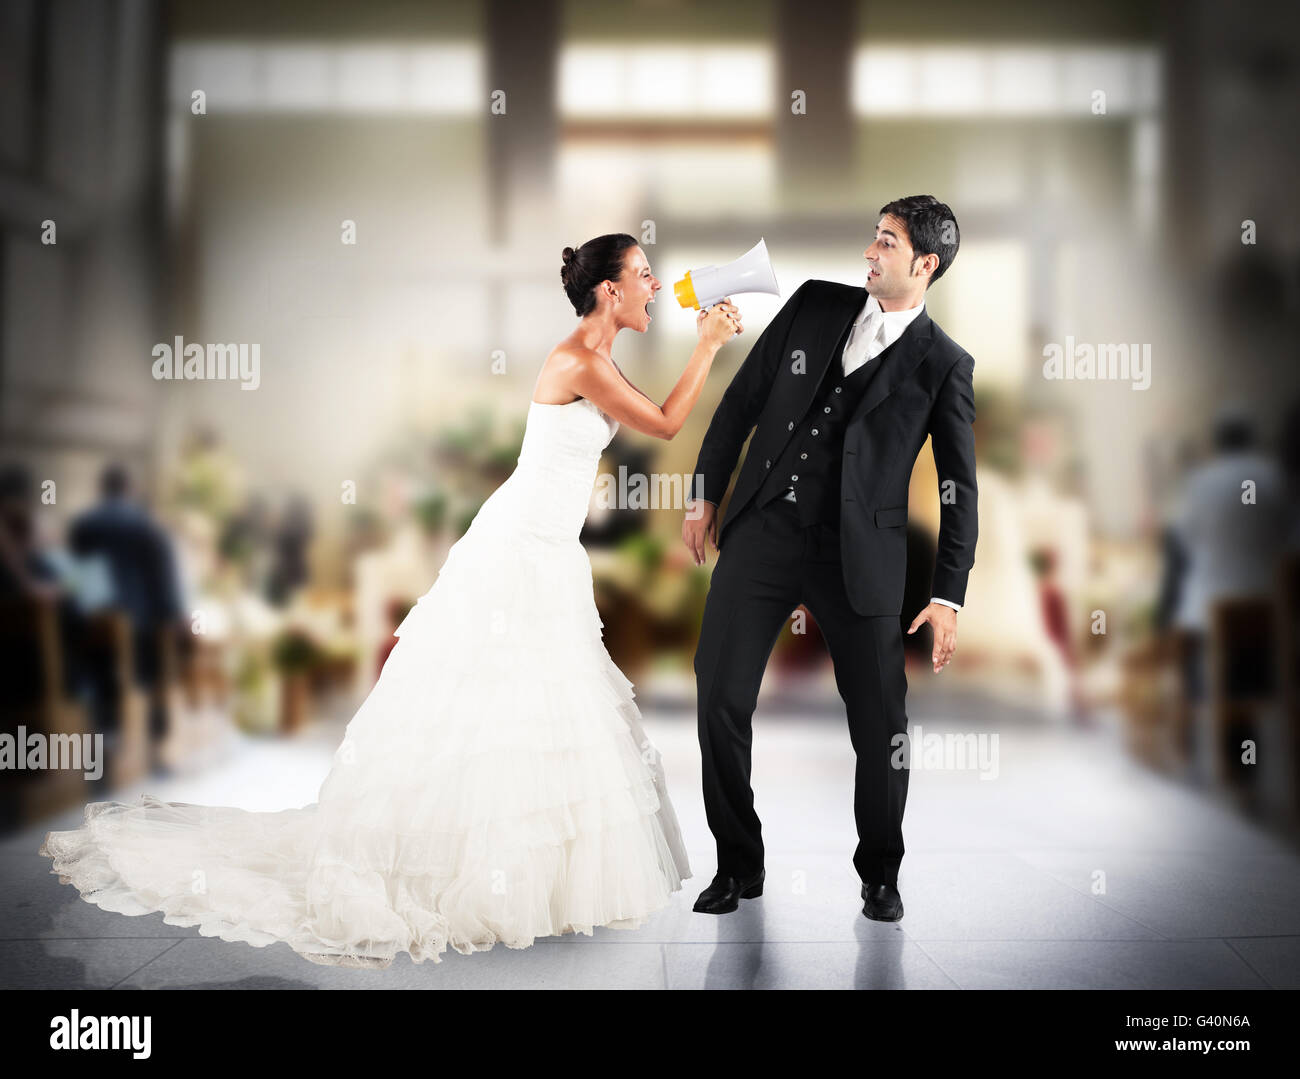 Dispute between spouses - Stock Image